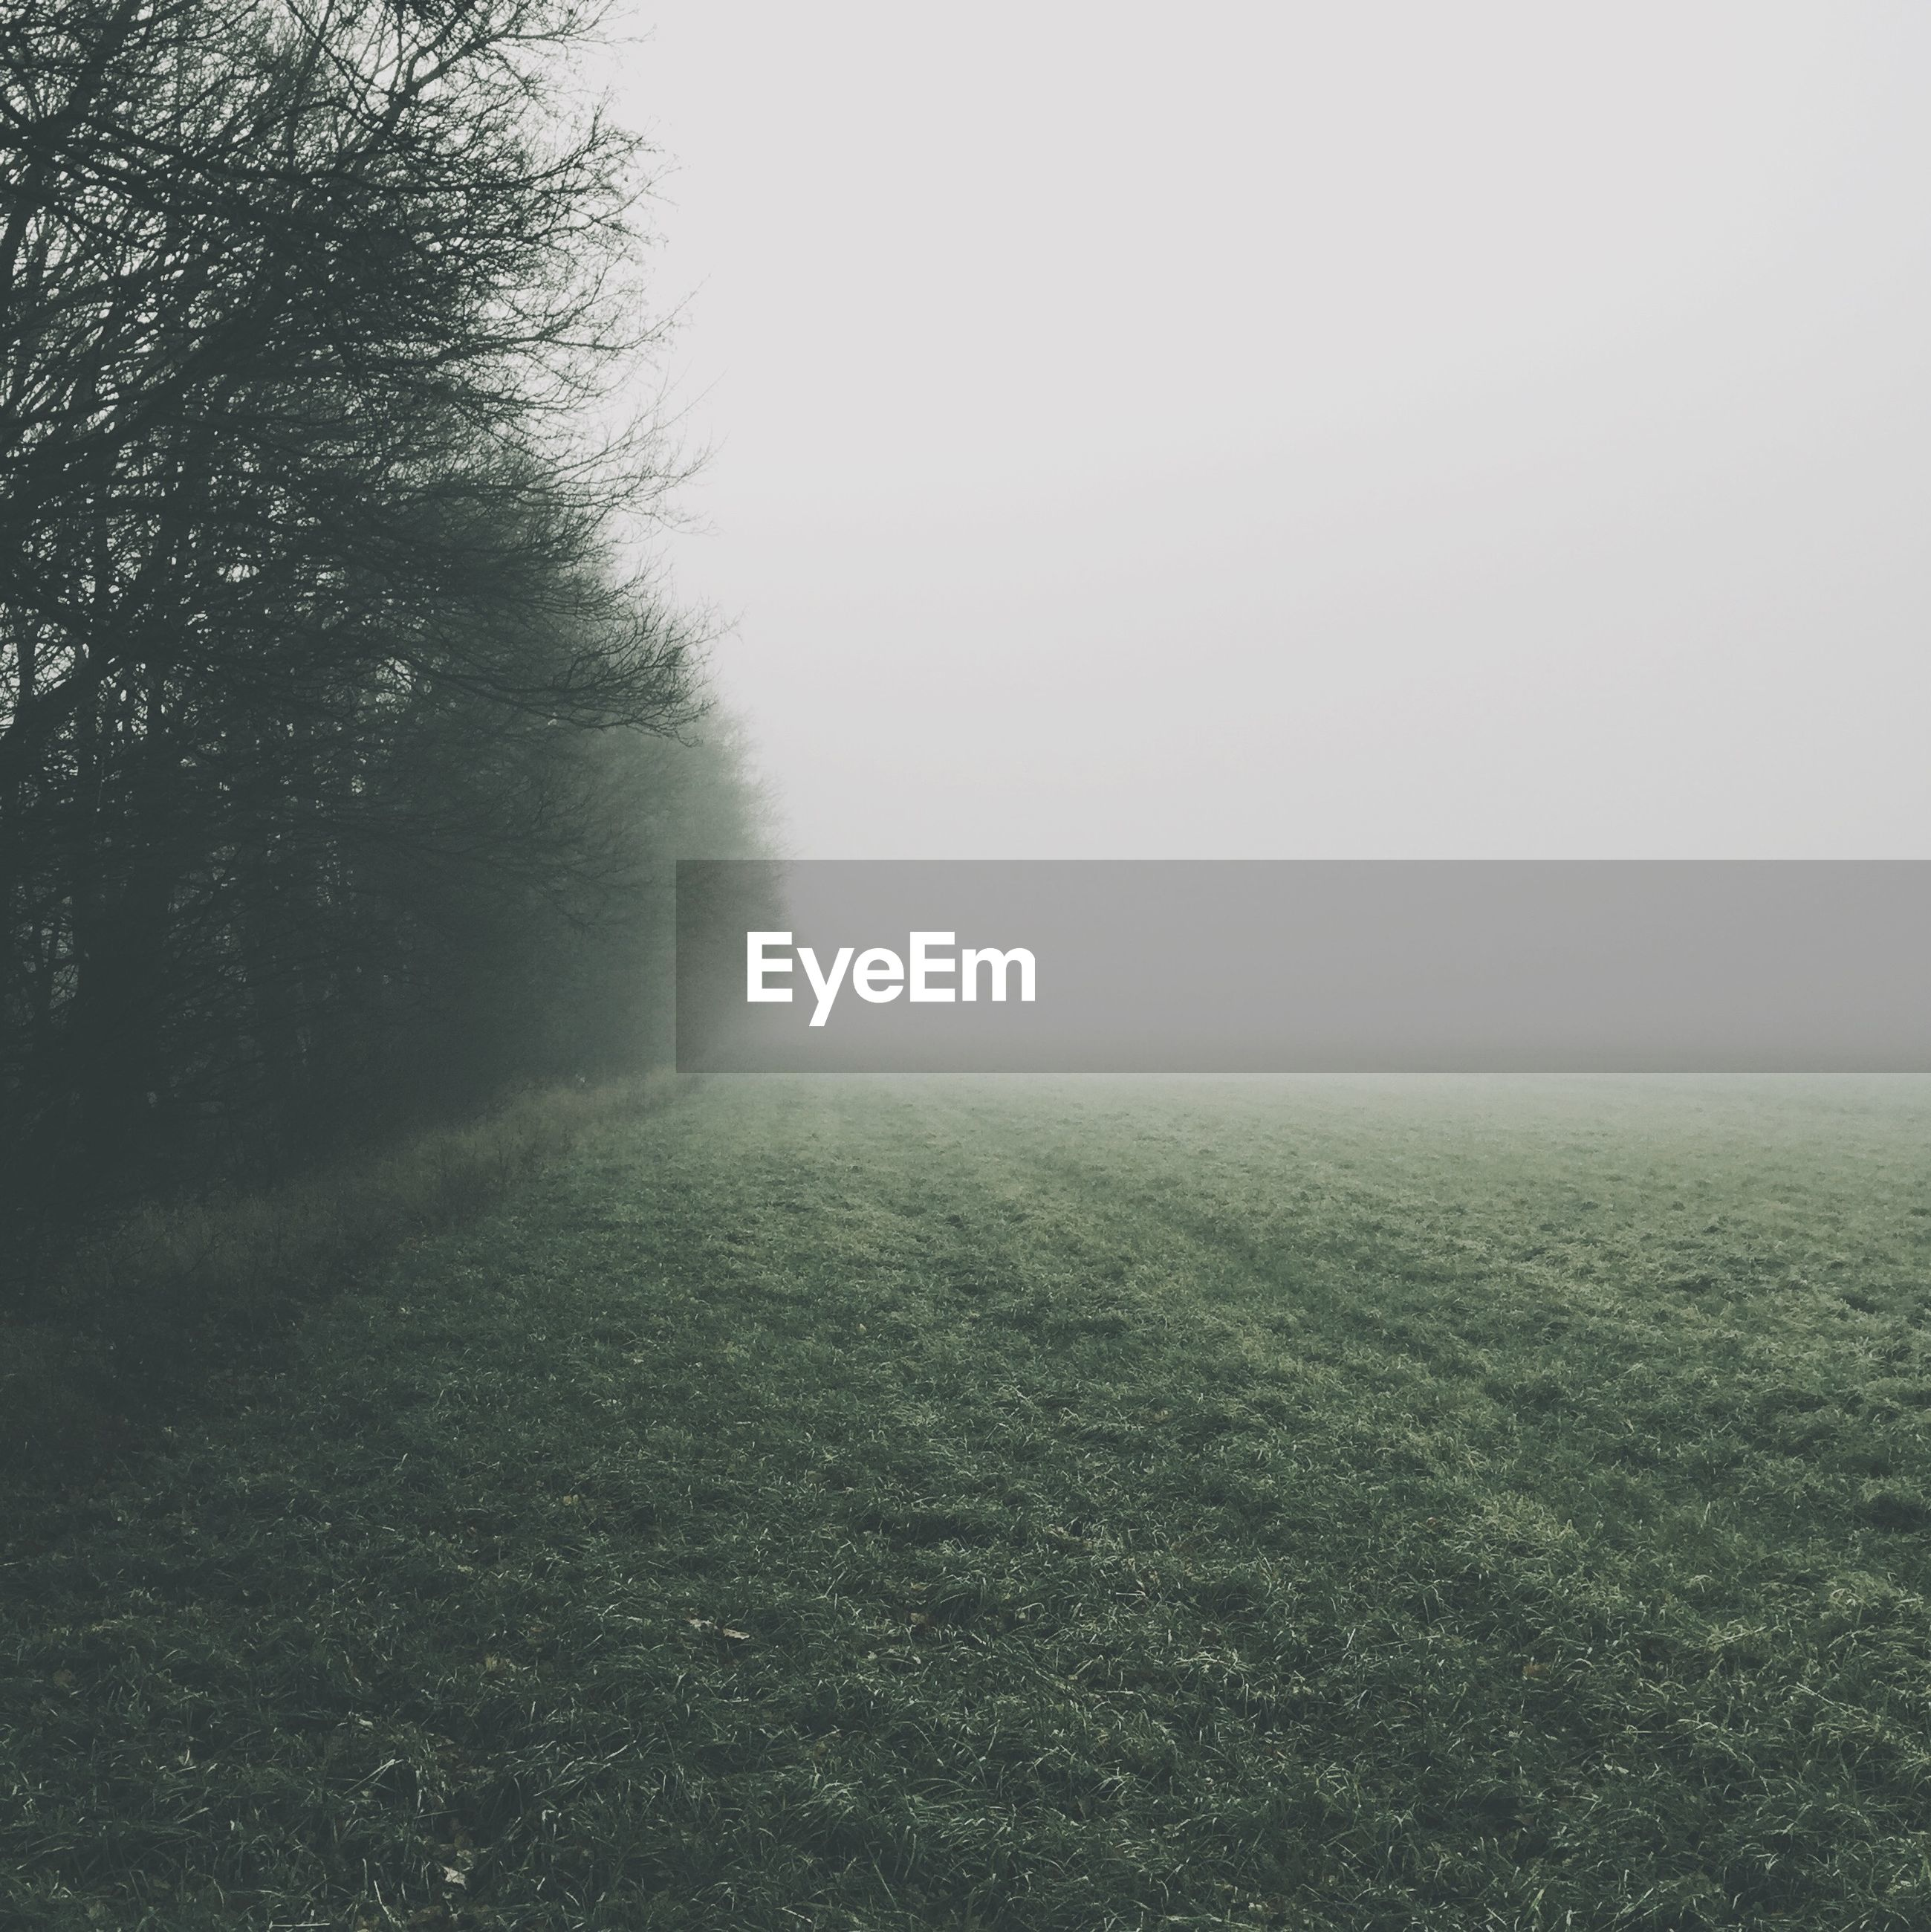 Trees and grassy field in foggy weather